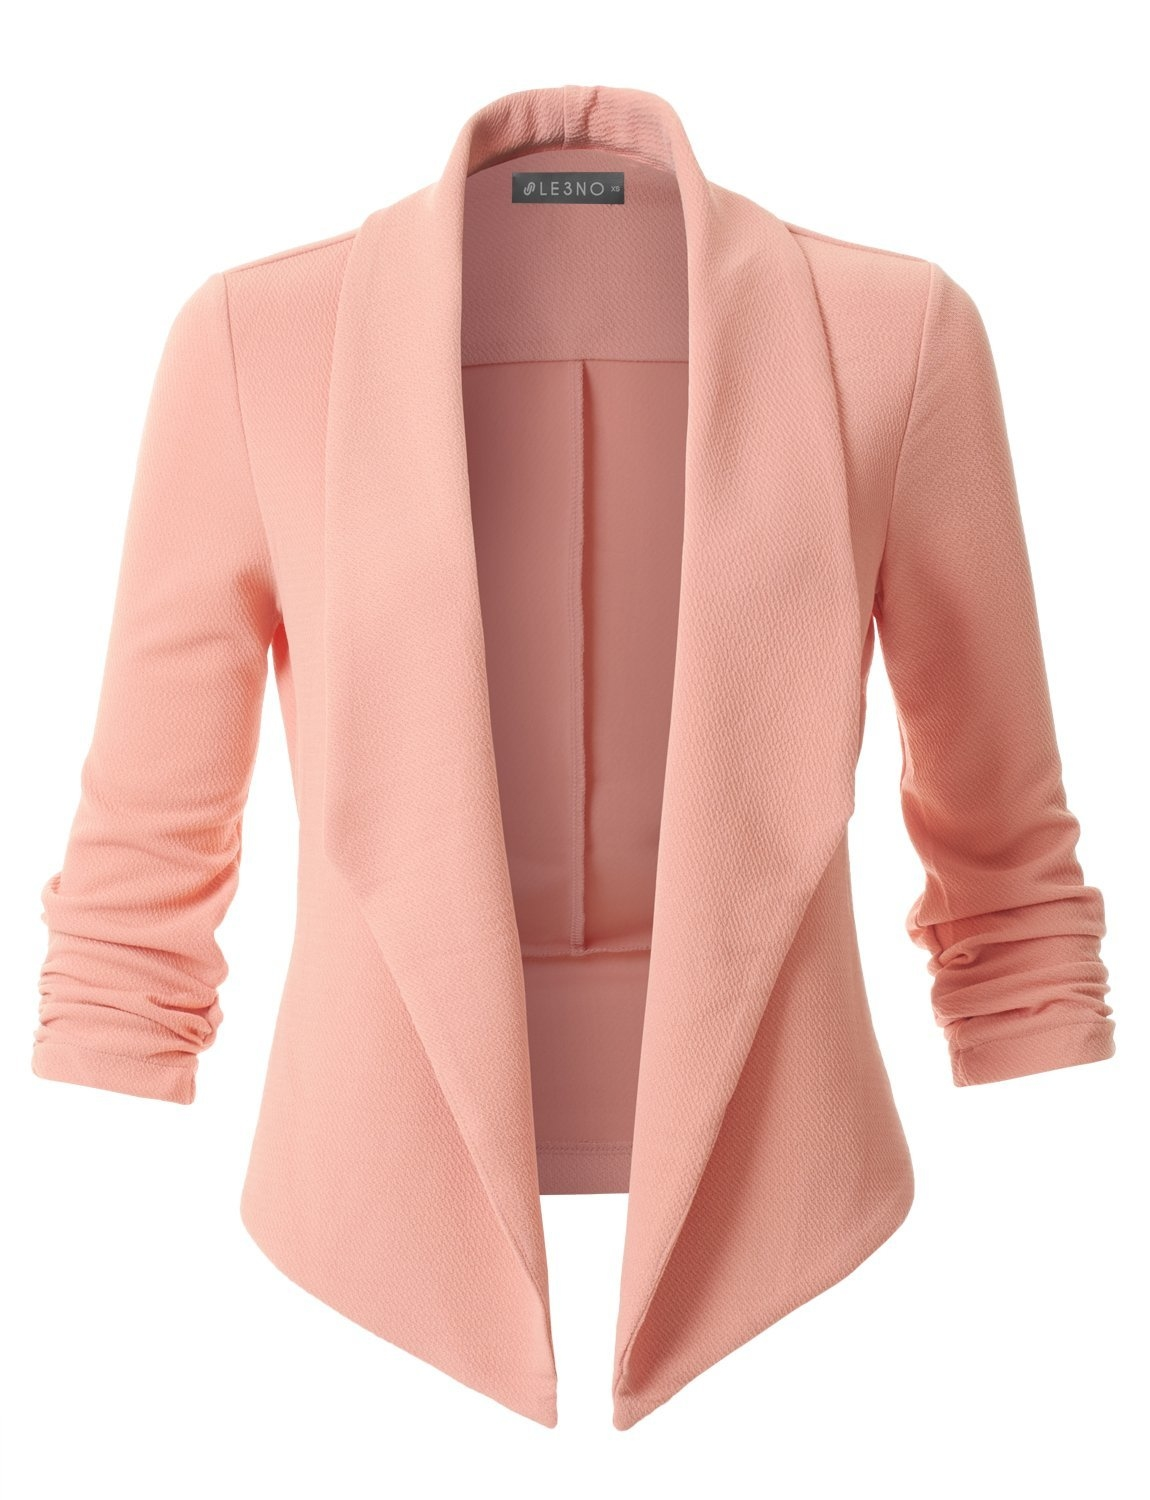 Image of Textured Ruched 3/4 Sleeve Open Front Tuxedo Blazer (CLEARANCE)